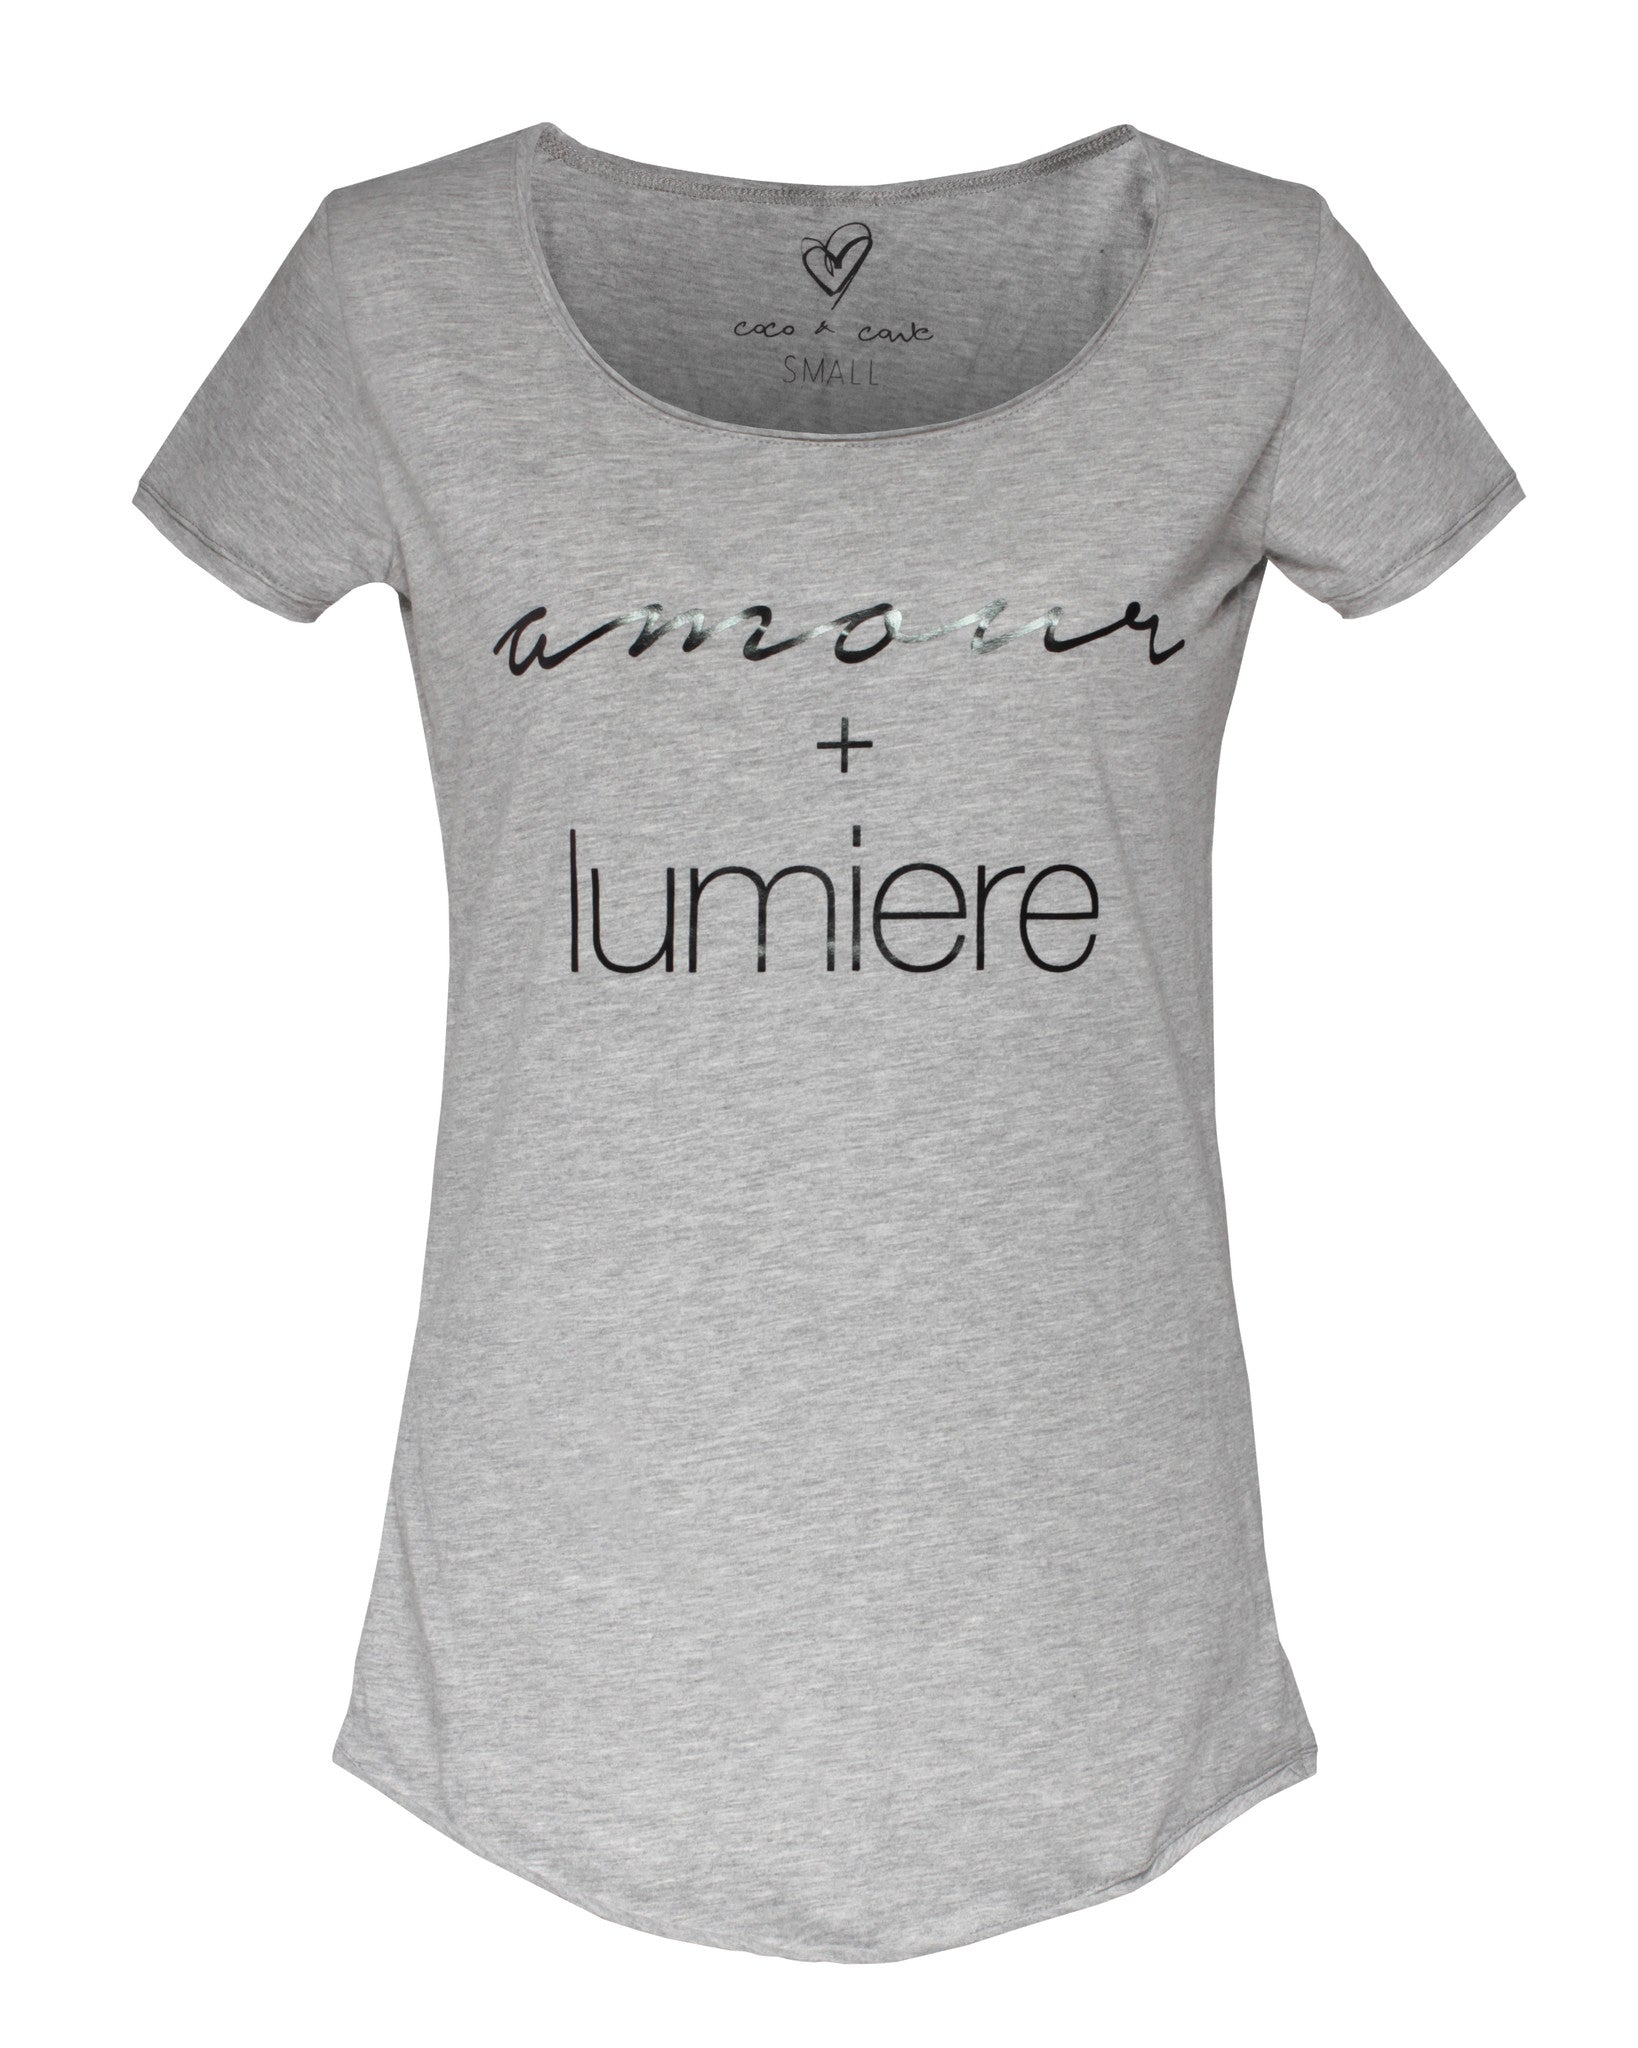 Amour + Lumière Baby Tee